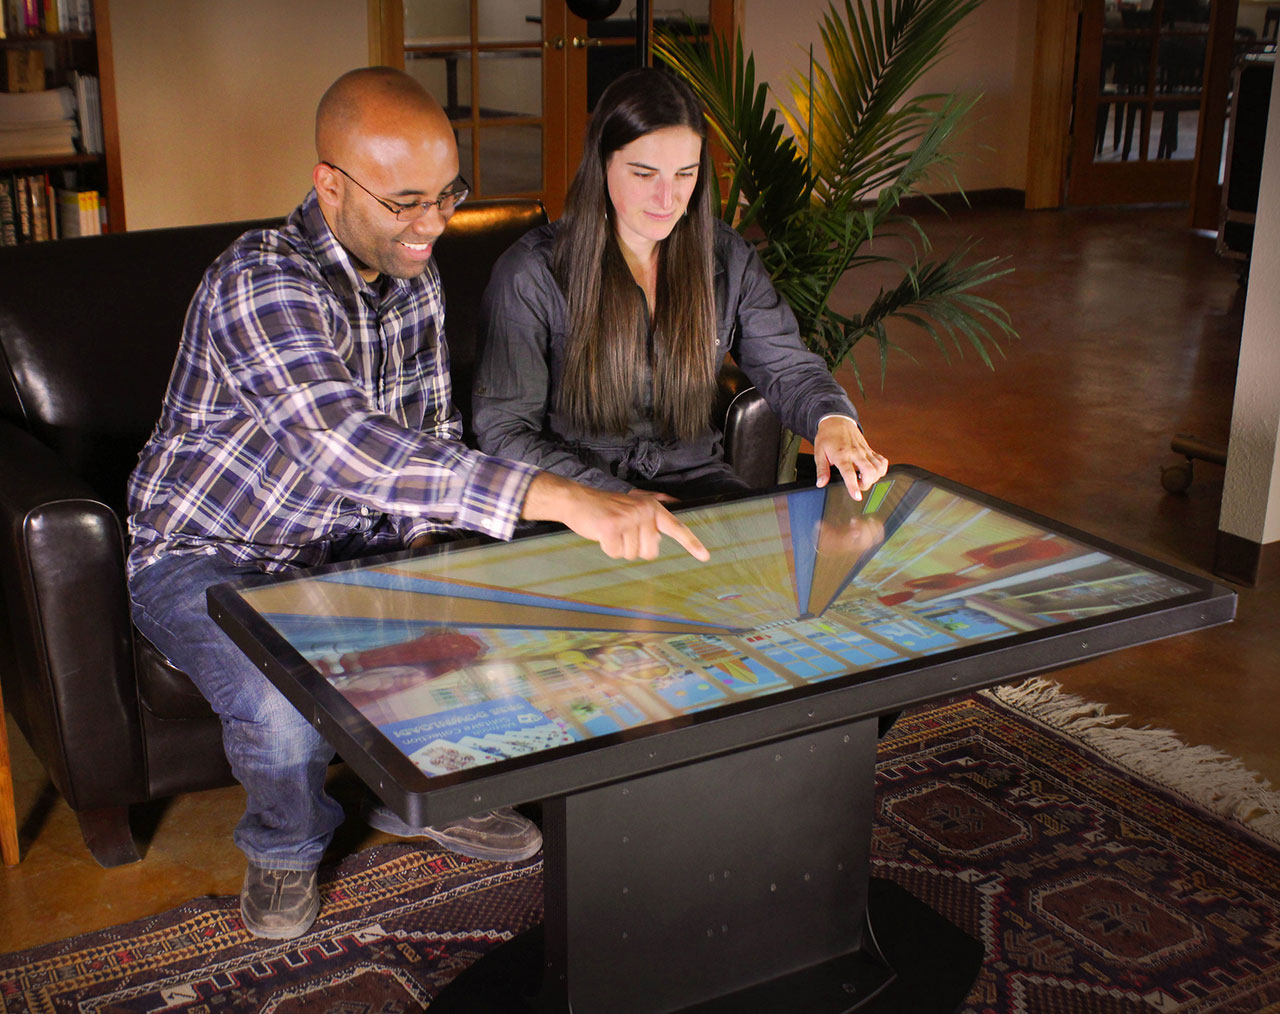 Ideum Multitouch Tables Now Available to Rent!